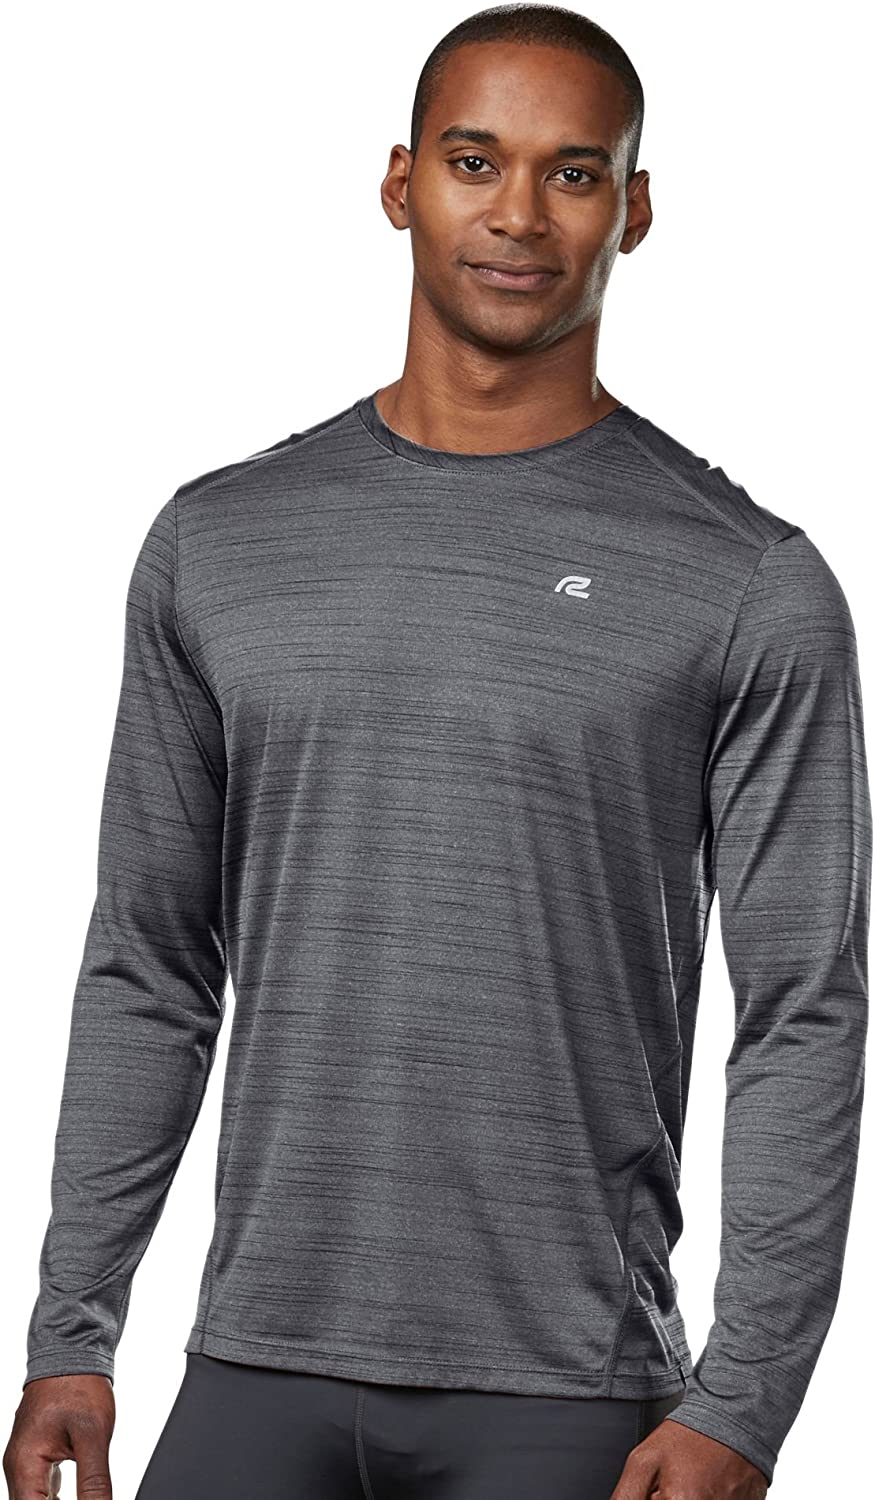 Road Runner Sports Mens Runners High Printed Long Sleeve